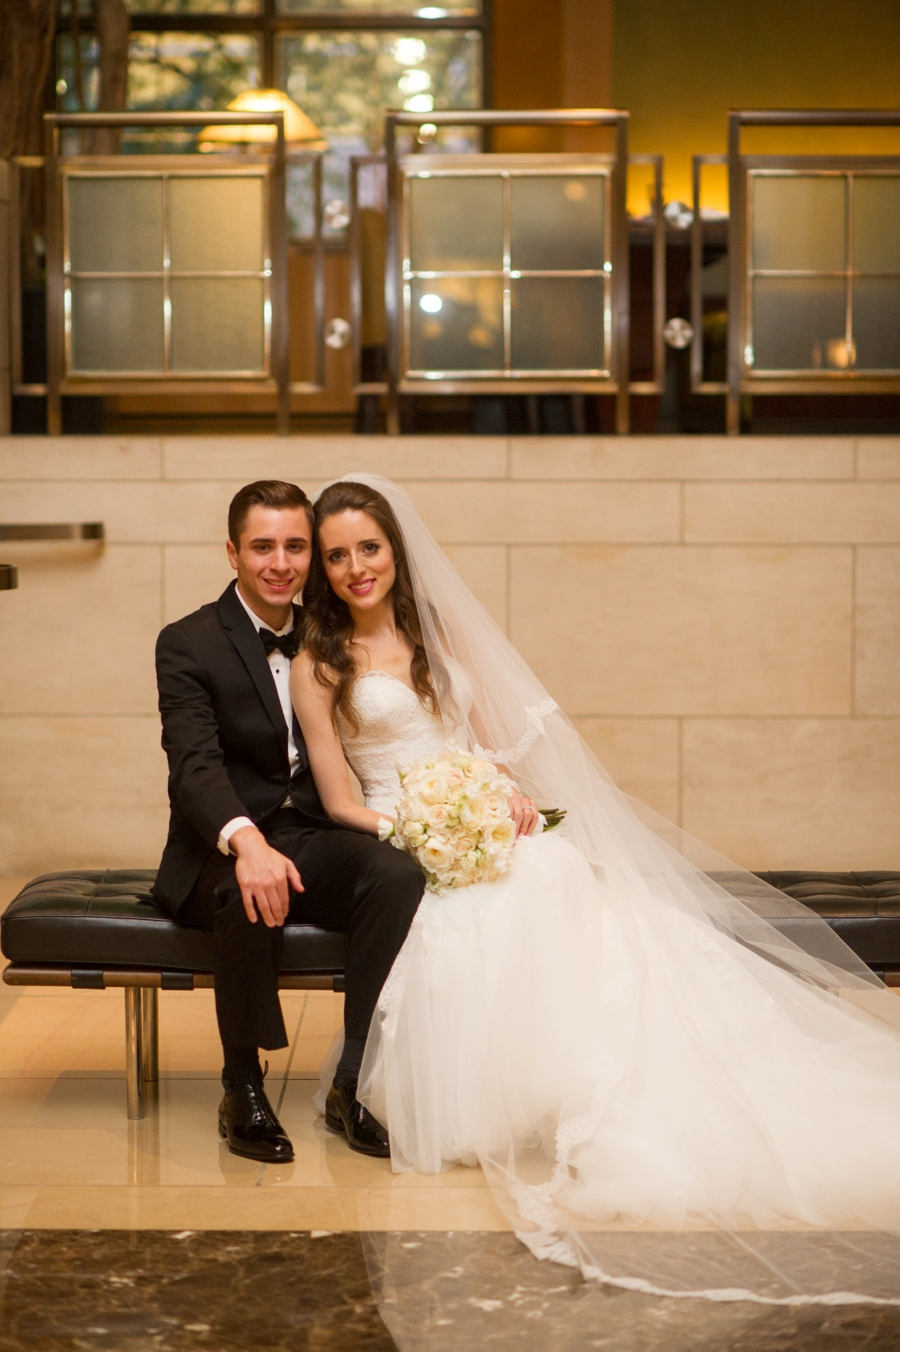 KR_FOUR_SEASONS_NYC_WEDDING_029.jpg